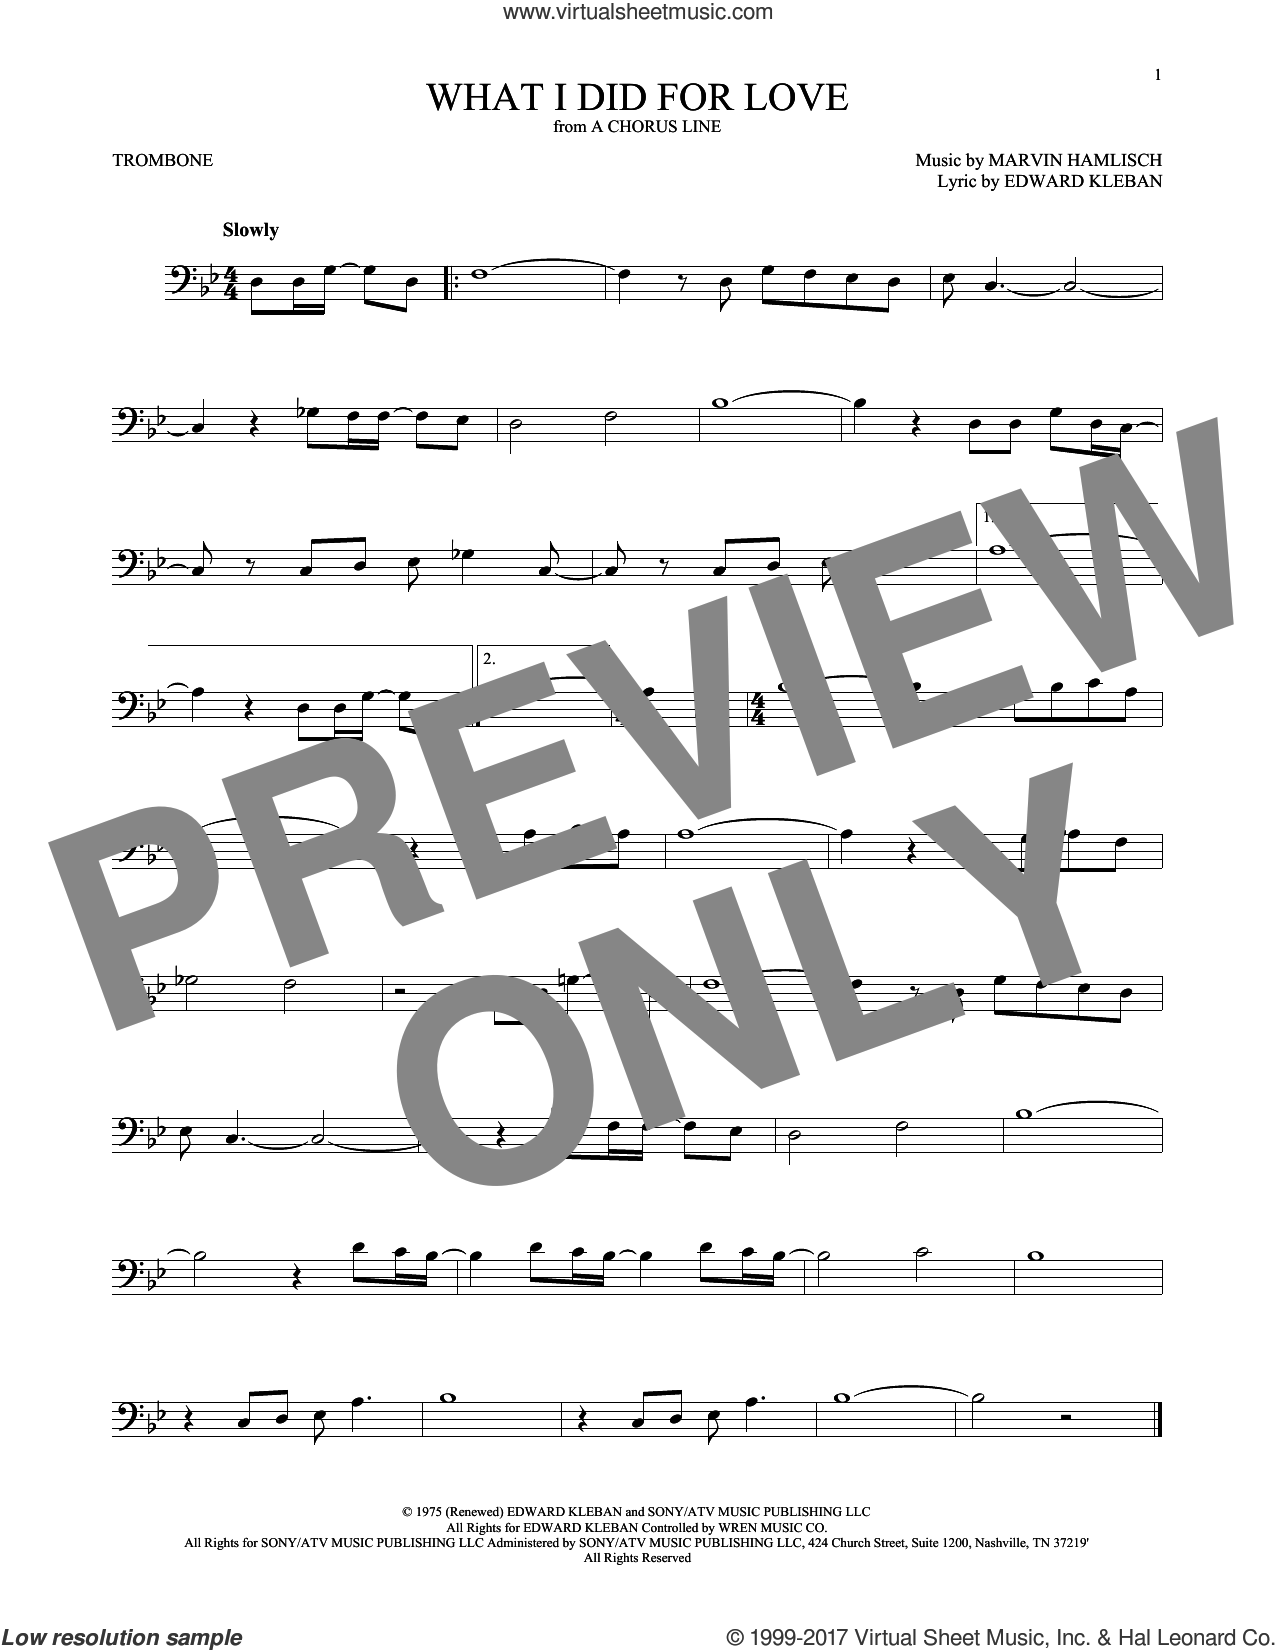 What I Did For Love sheet music for trombone solo by Marvin Hamlisch and Edward Kleban, intermediate skill level